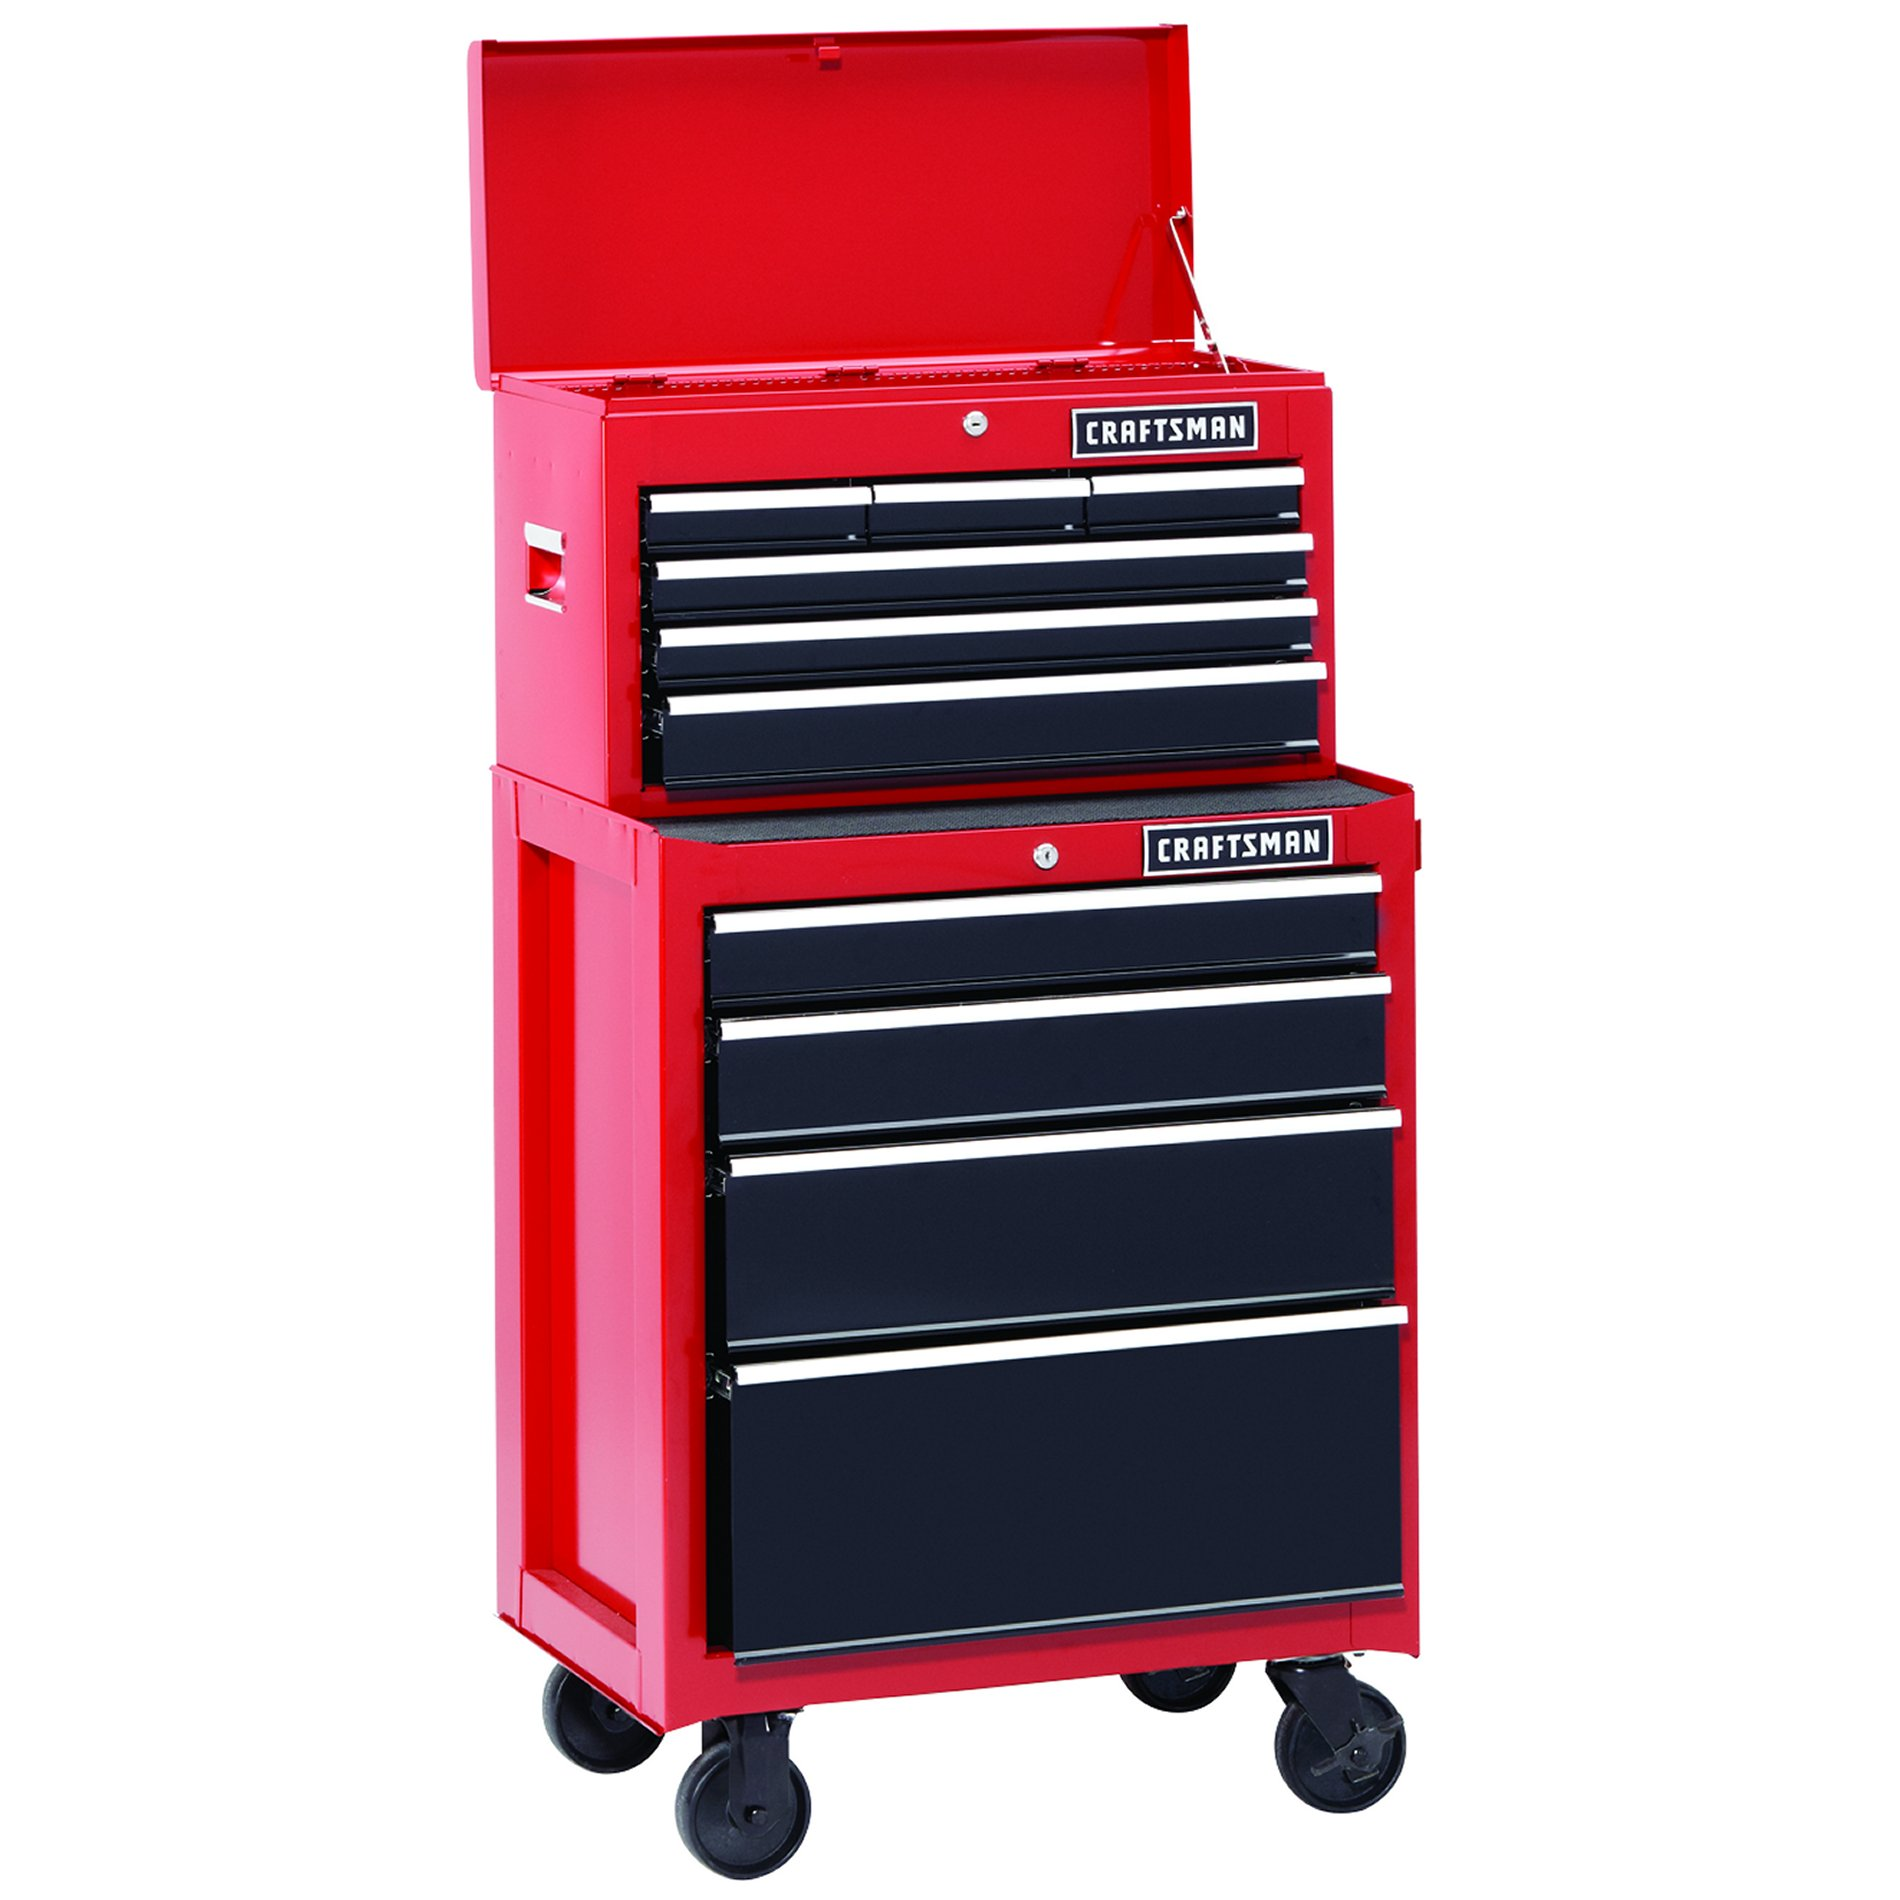 Craftsman 26 in. 6-Drawer Heavy-Duty Ball Bearing Top Chest